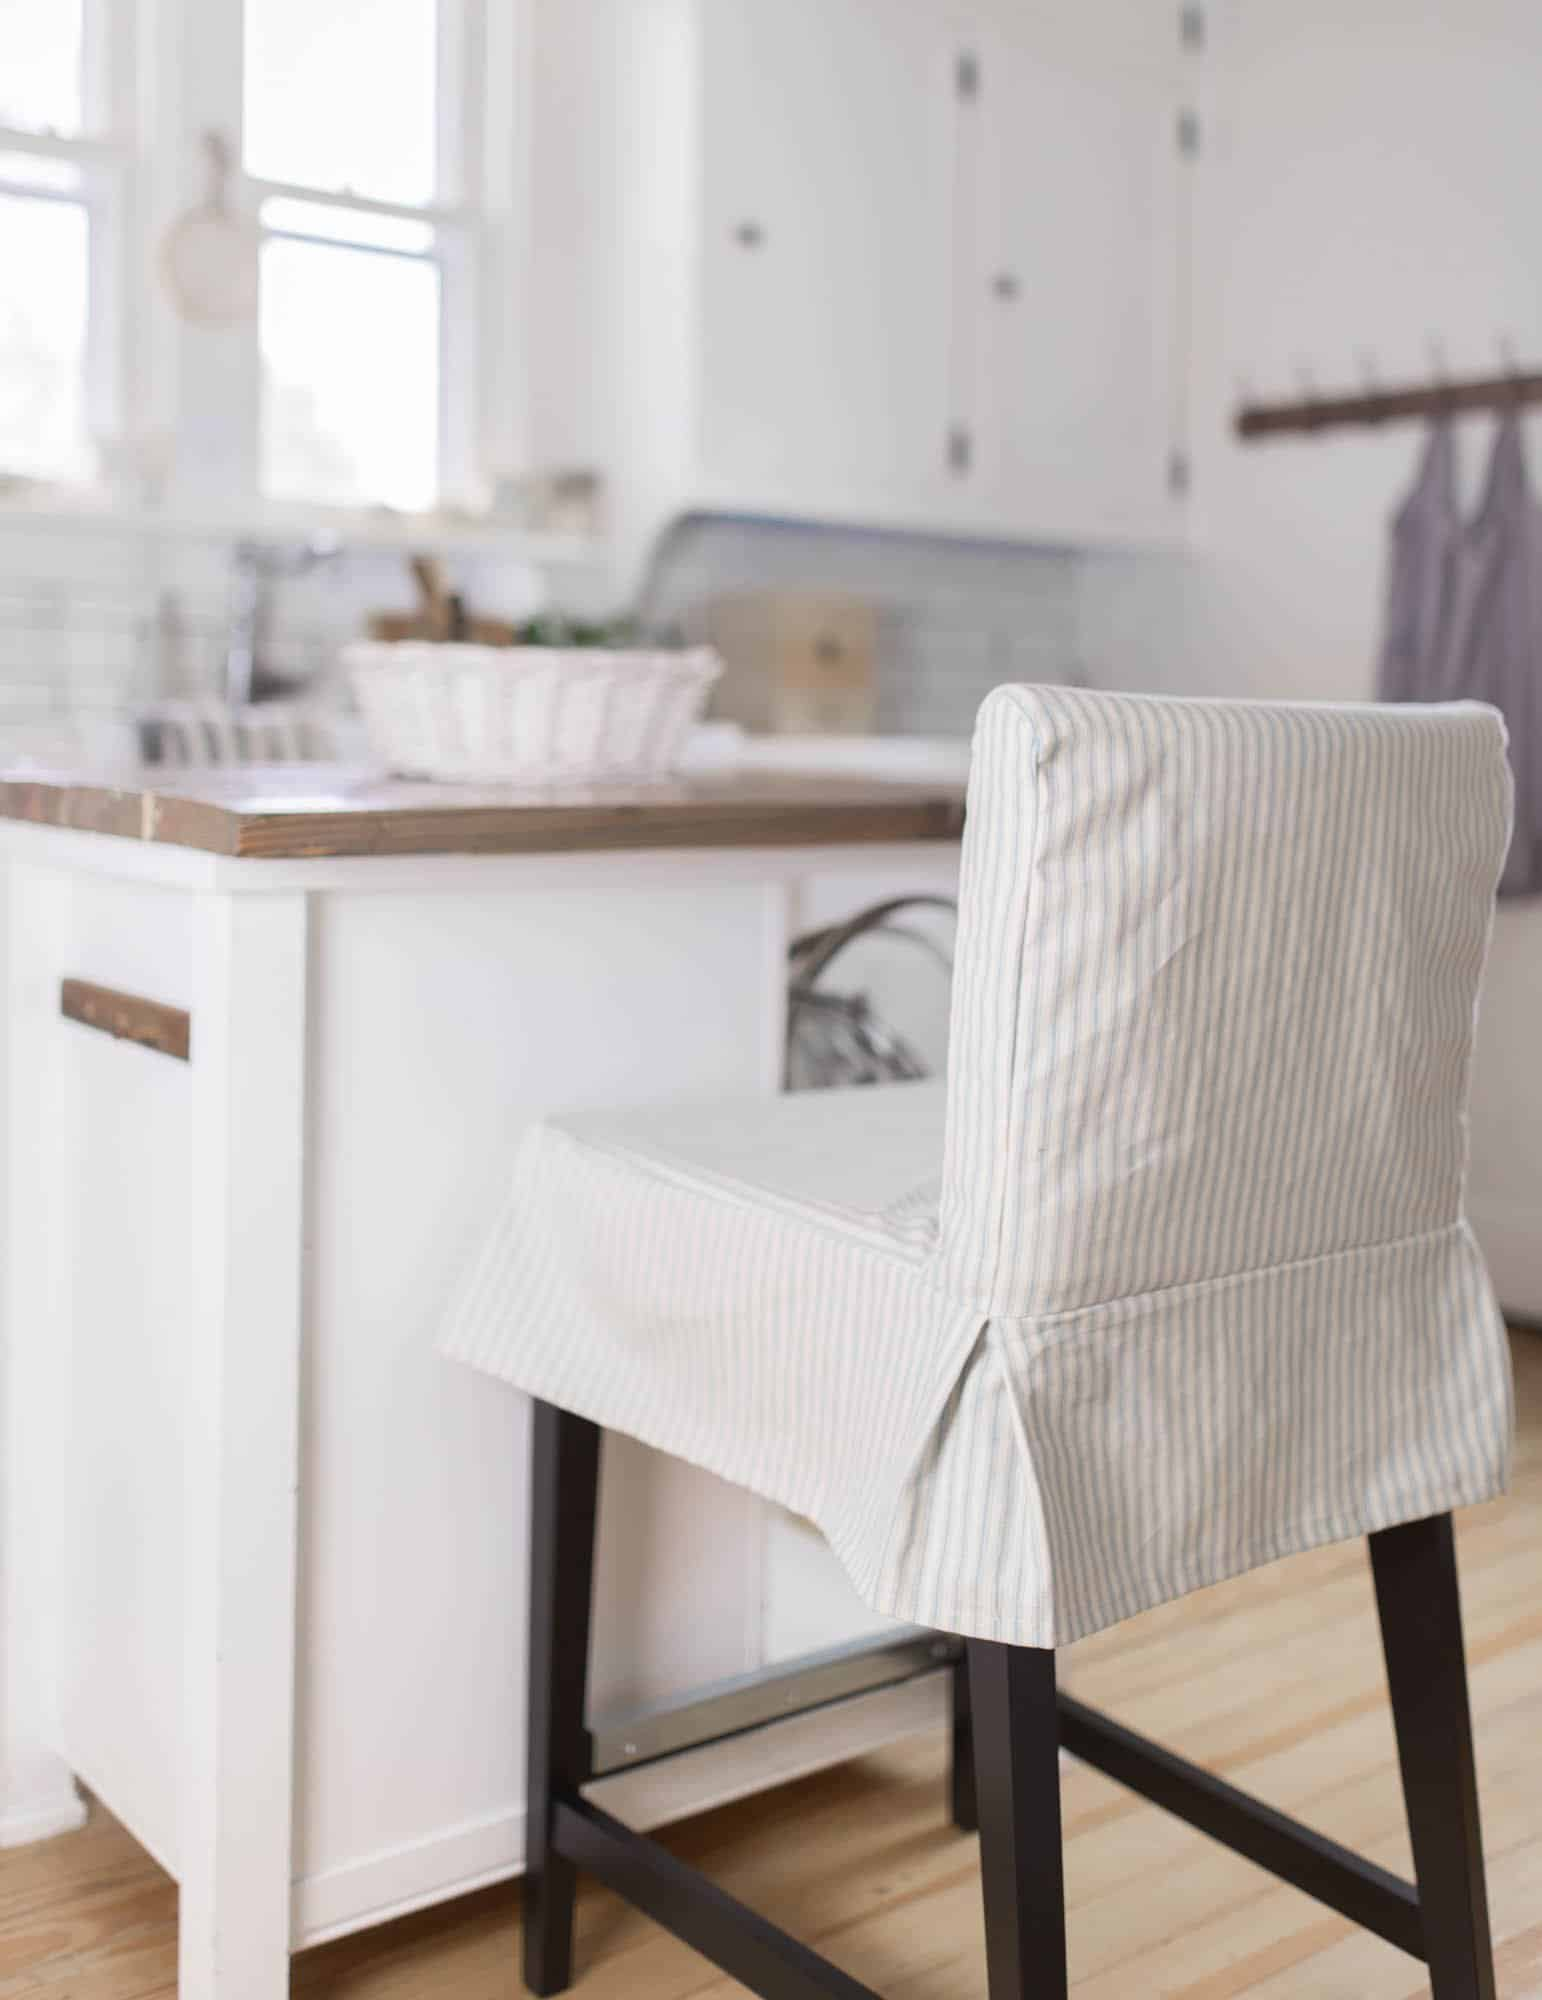 Learn how to sew a parsons chair slipcover for the ikea henriksdal bar stool.  This henriksdal chair cover sewing pattern includes a video tutorial.